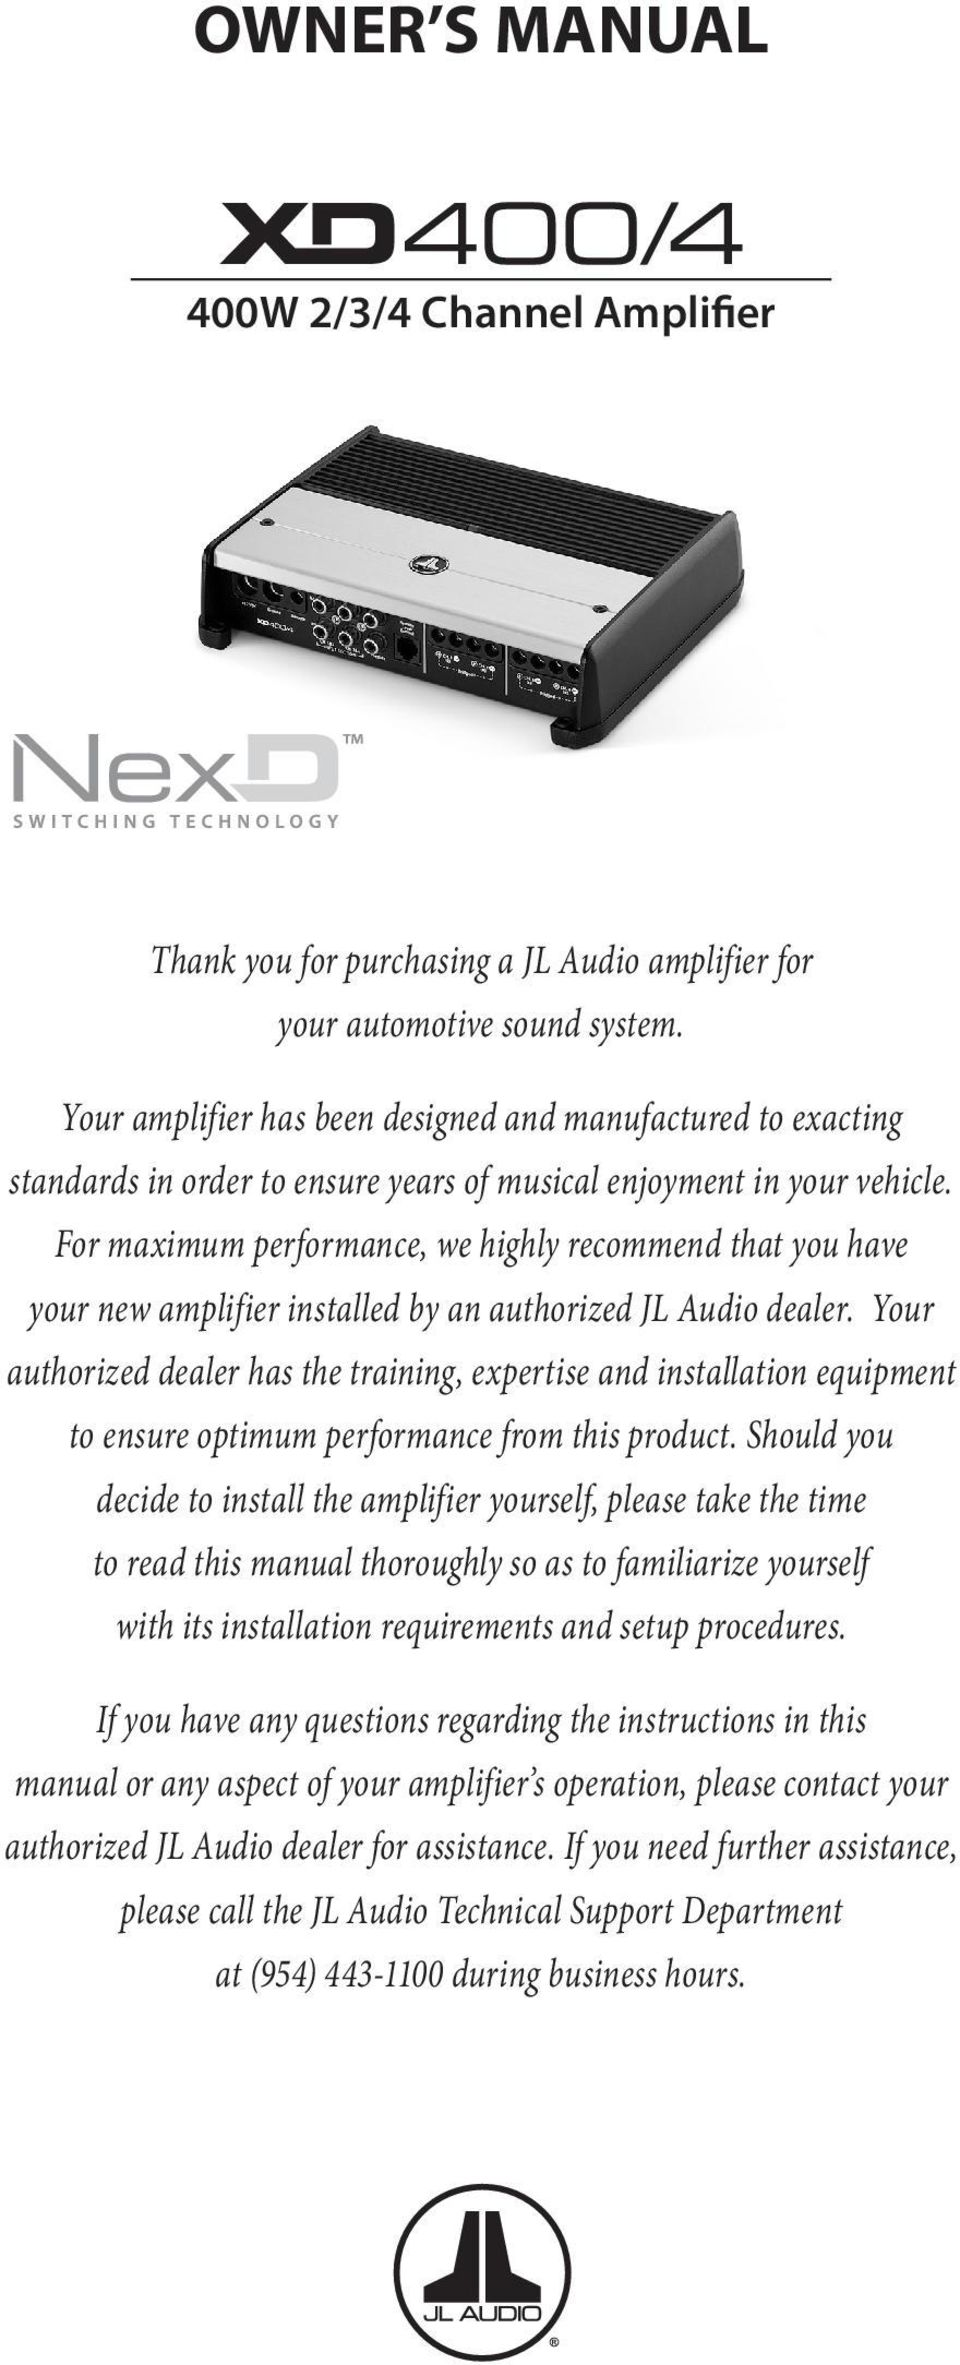 For maximum performance, we highly recommend that you have your new amplifier installed by an authorized JL Audio dealer.